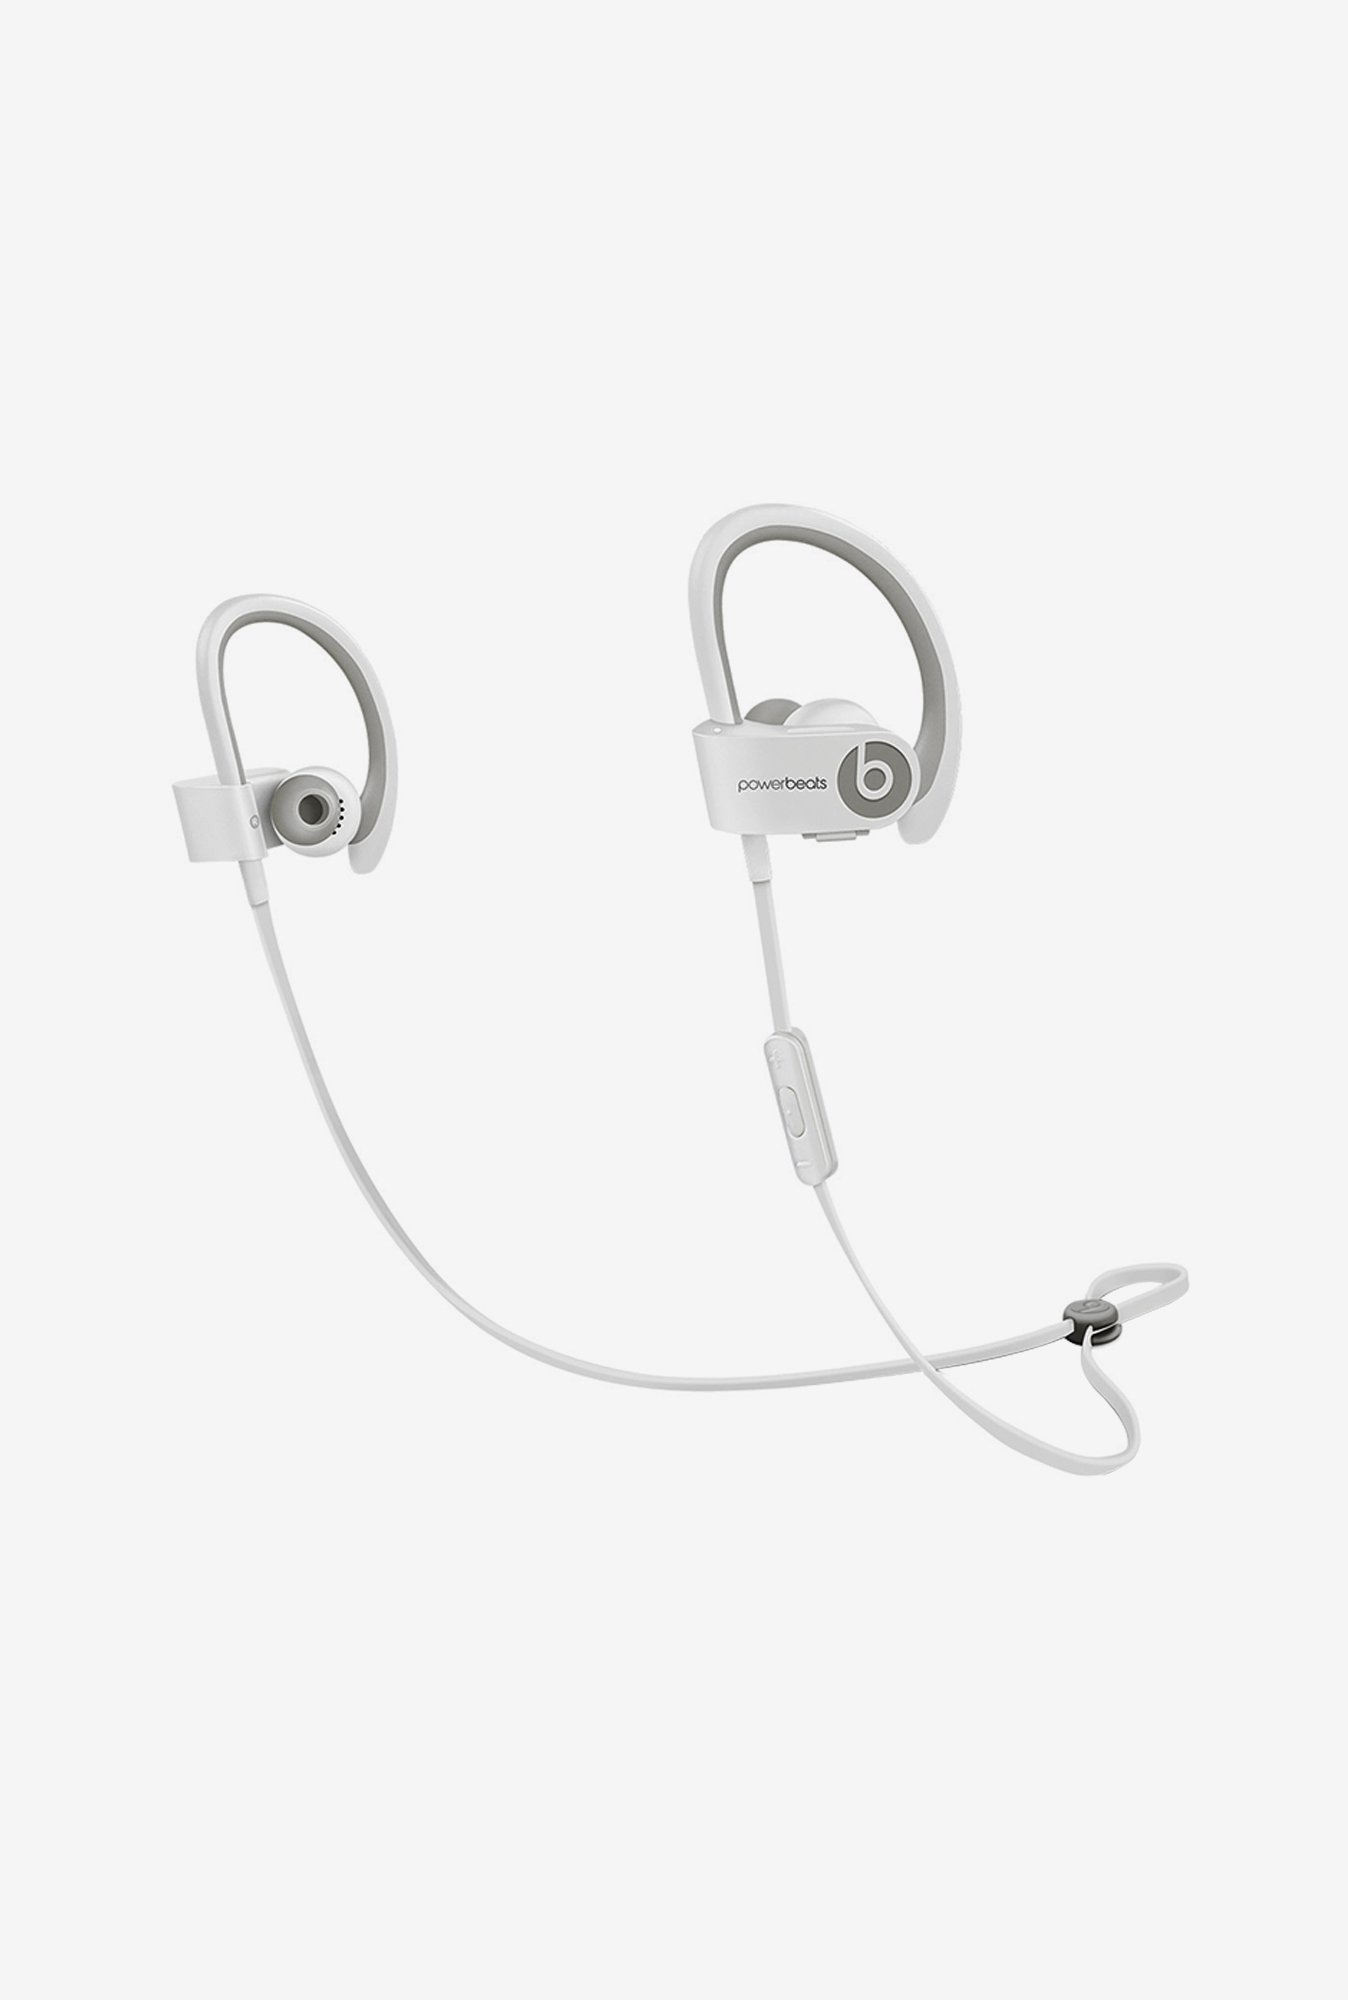 Beats by Dr.Dre PowerBeats2 MHBG2ZM/A In Ear Headphone White